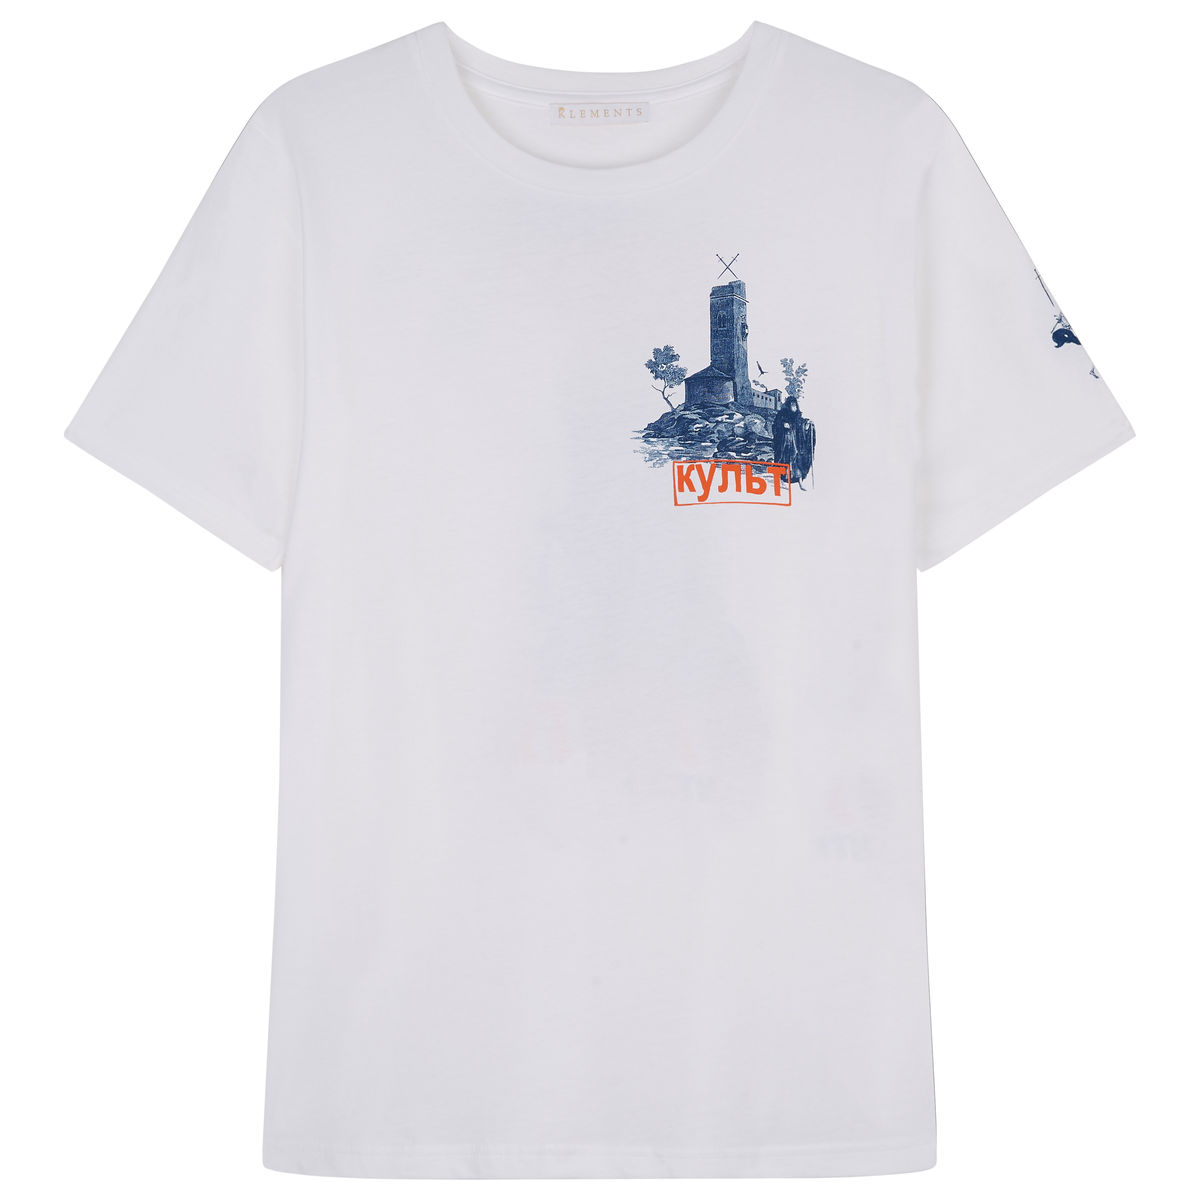 Cult Printed T-shirt, white - product images  of